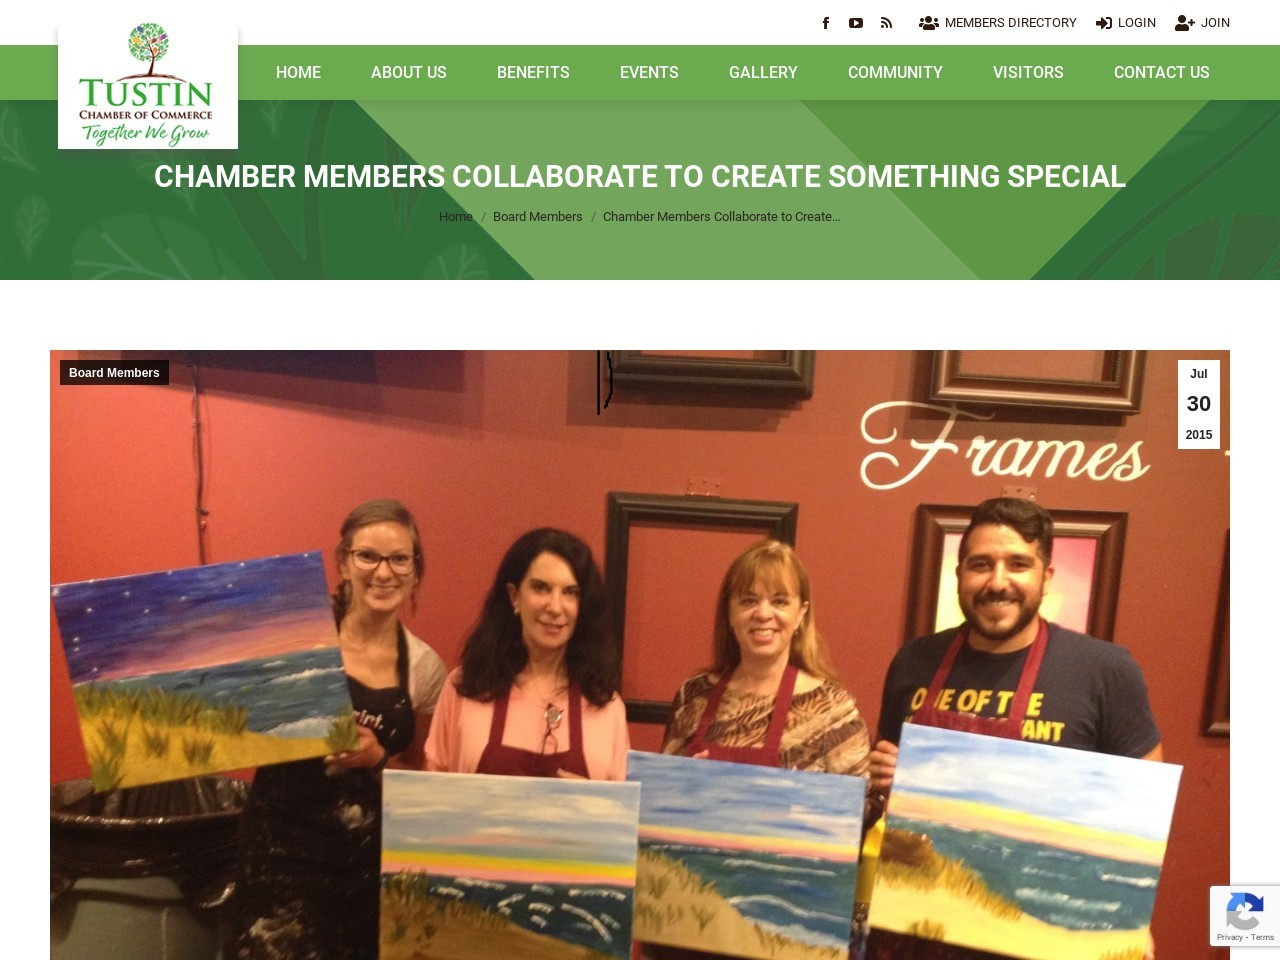 Chamber Members Collaborate to Create Something Special